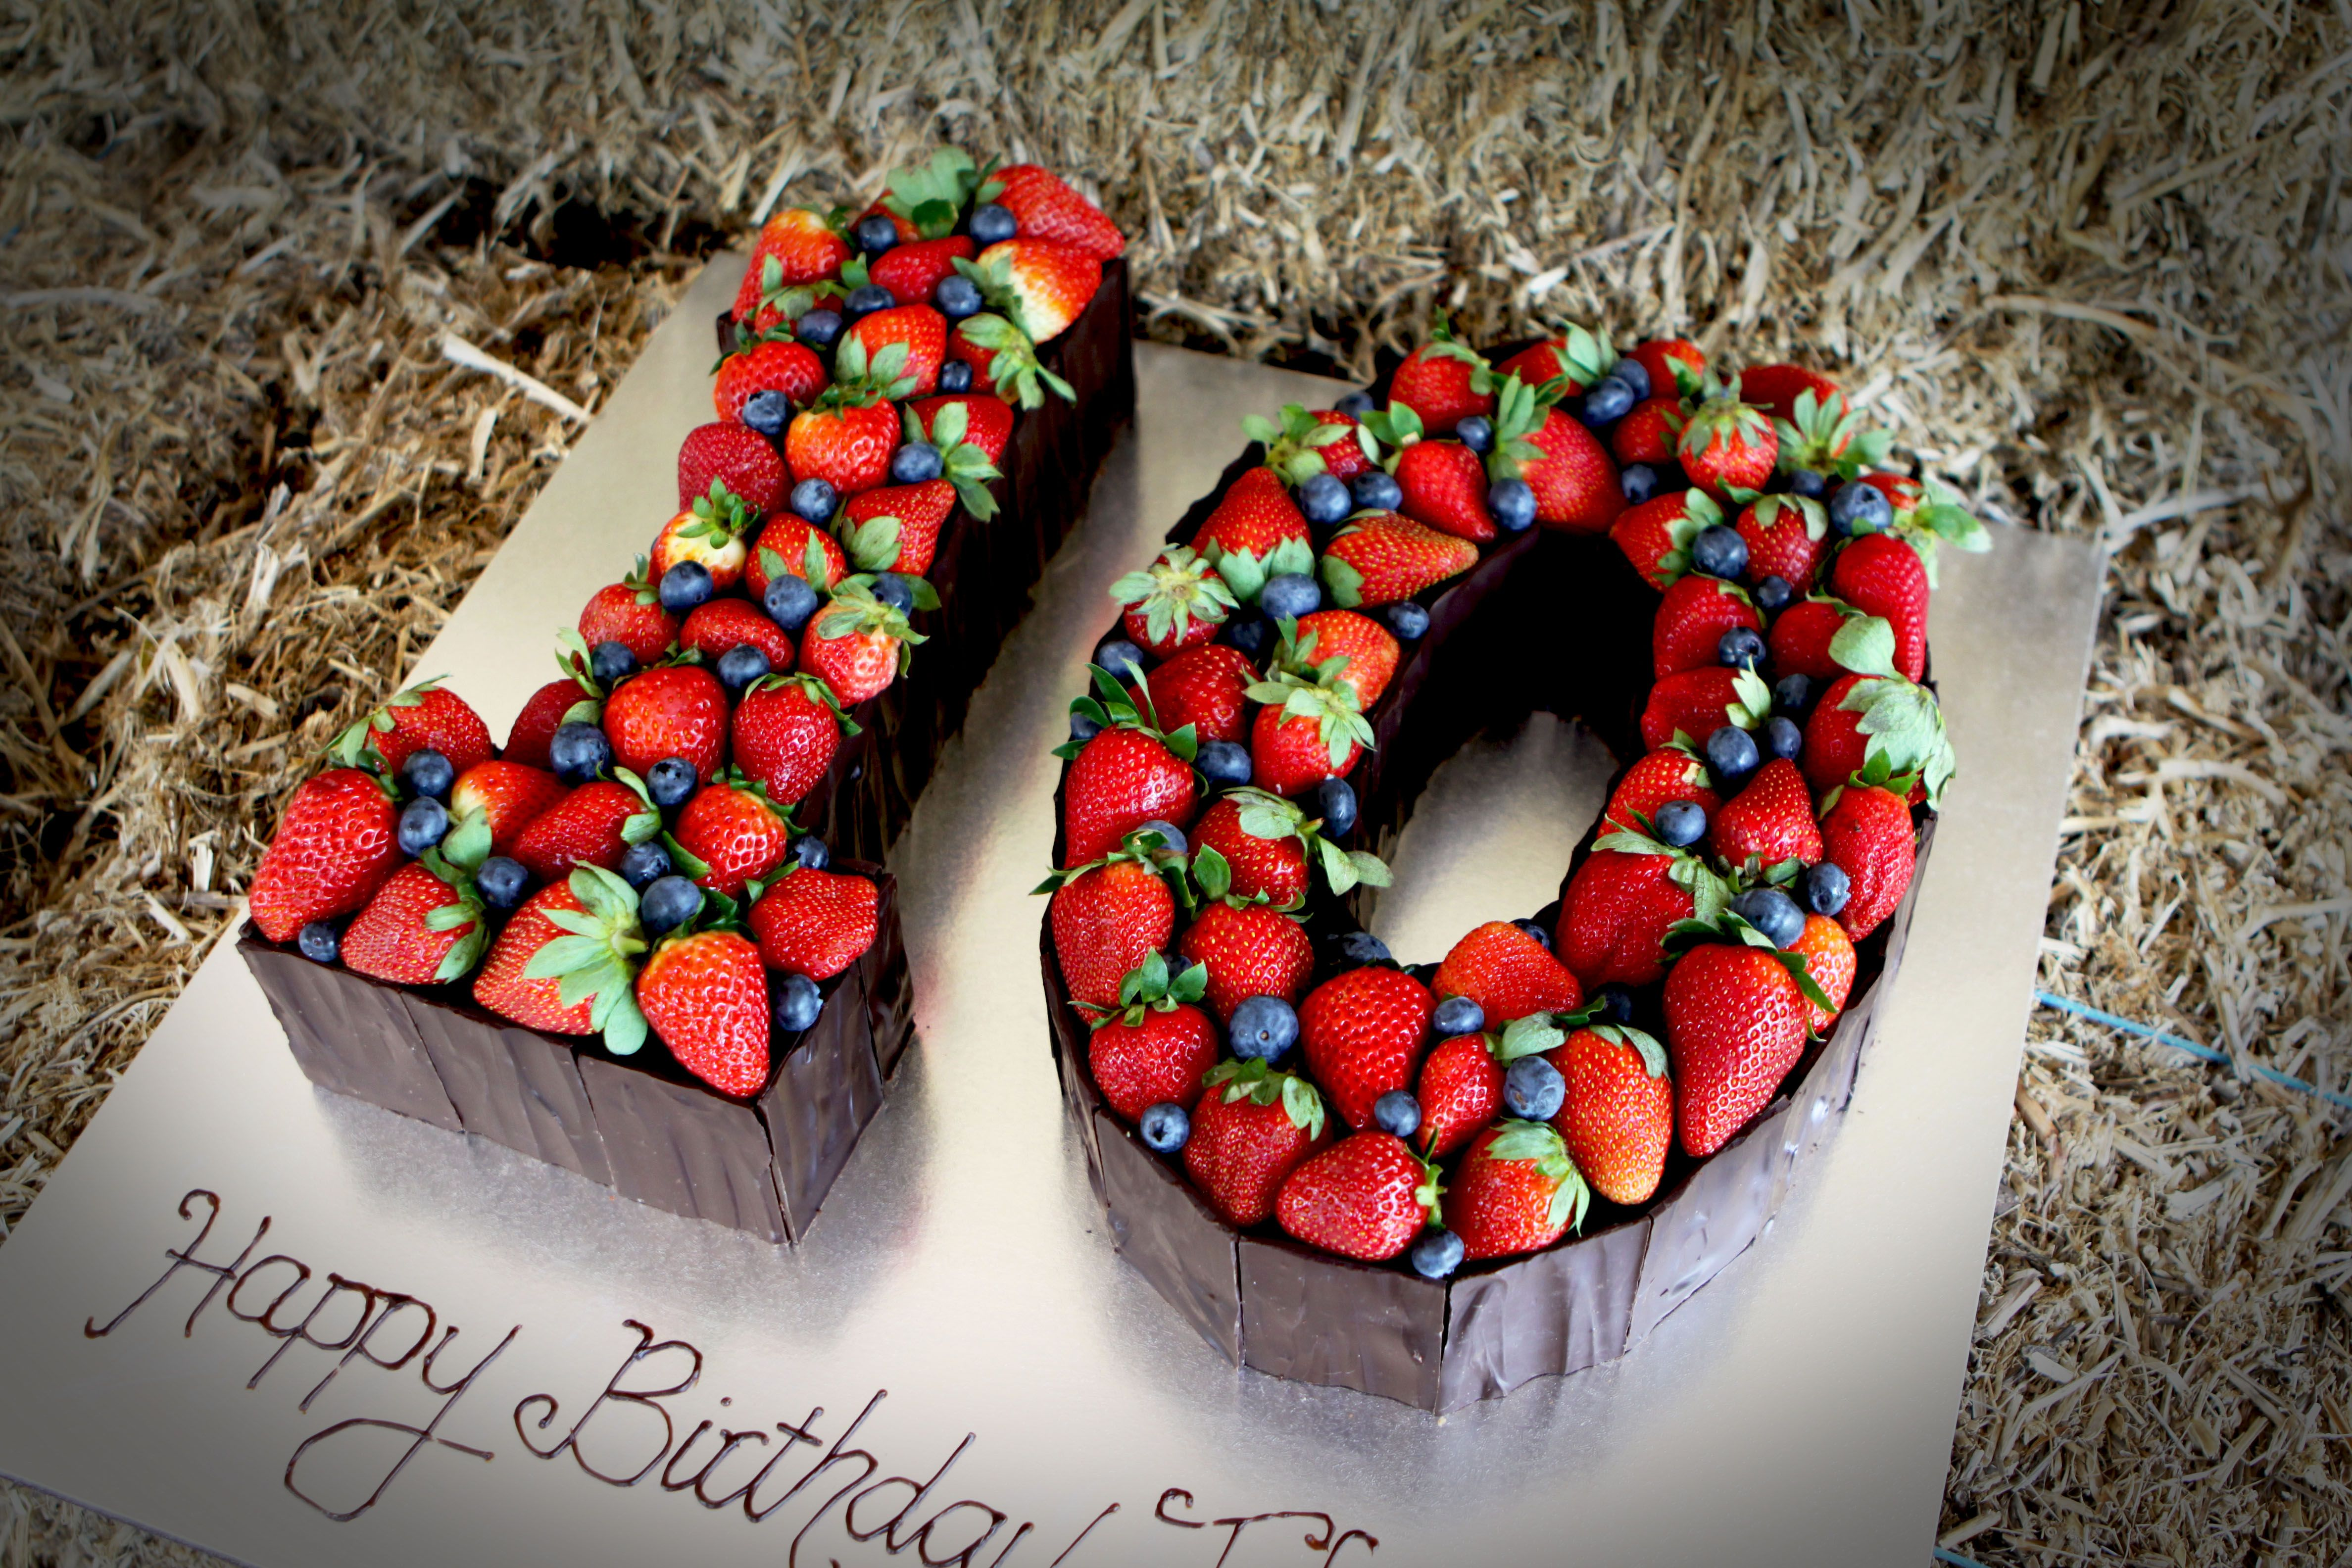 Chocolate Mud Number 10 Cake Decorated With Fresh Berries